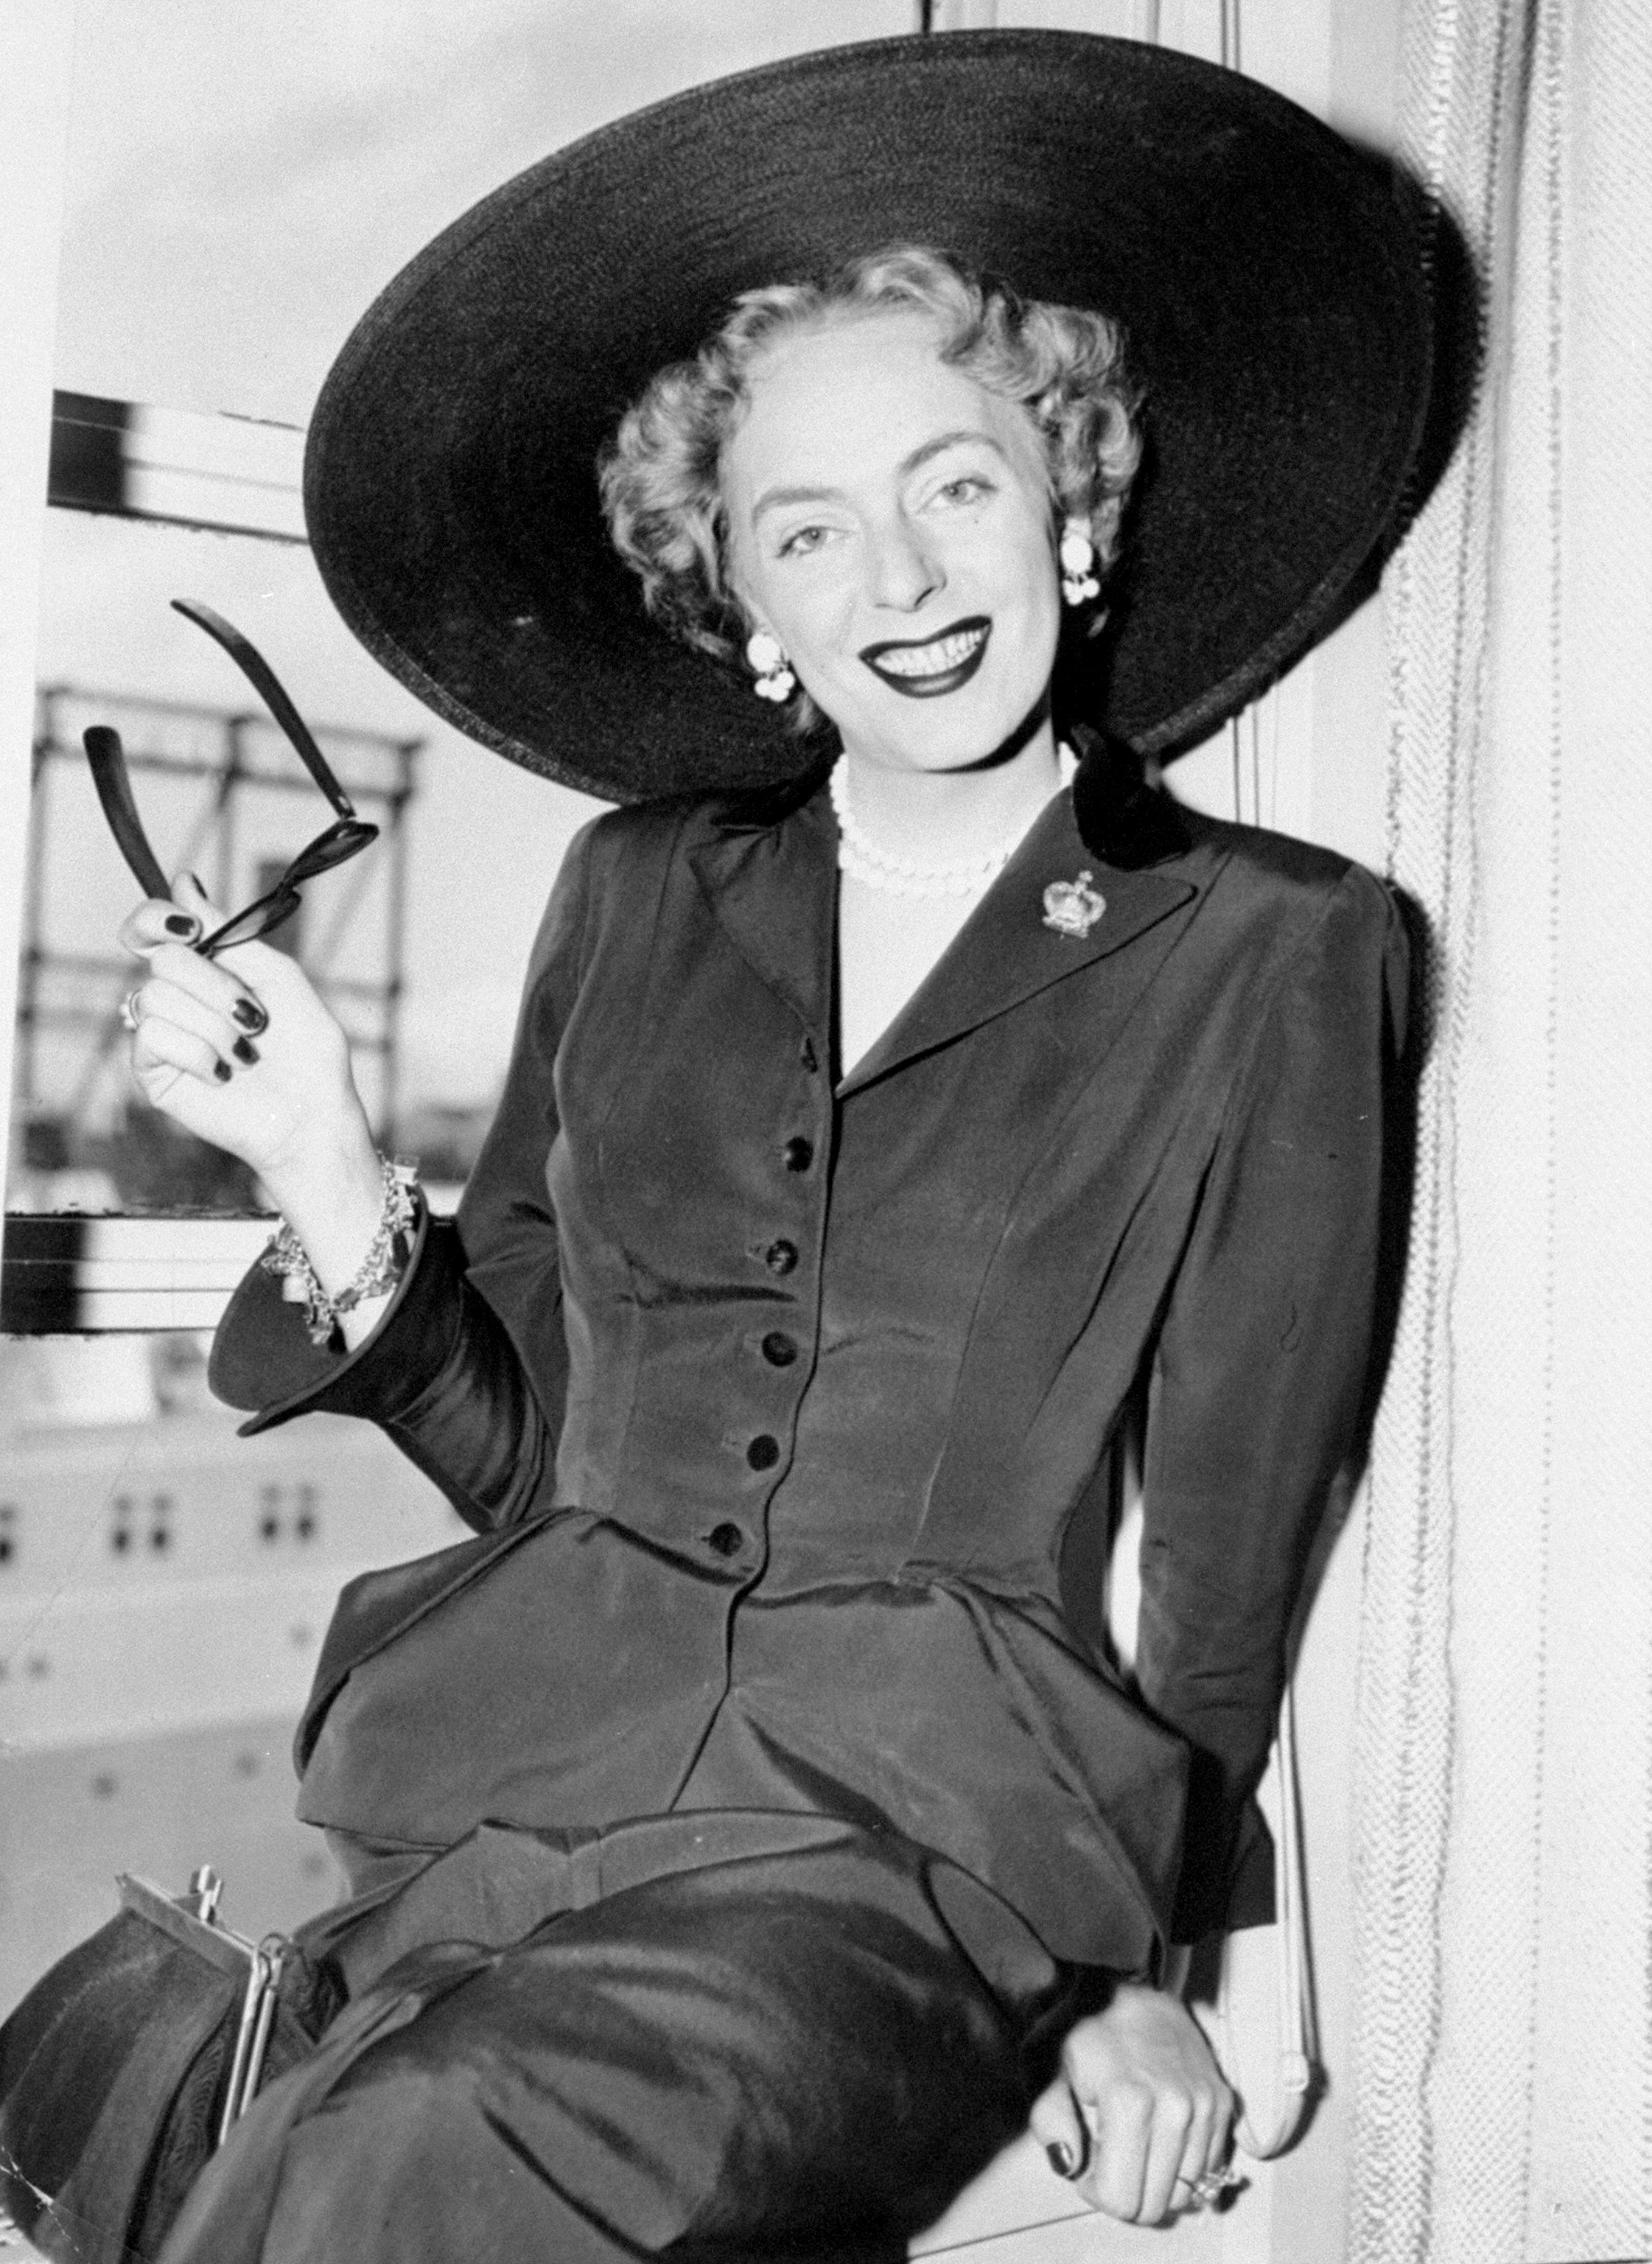 Christine Jorgensen, a former soldier, became a nationwide media sensation after having sex reassignment surgery in Denmark in 1952.